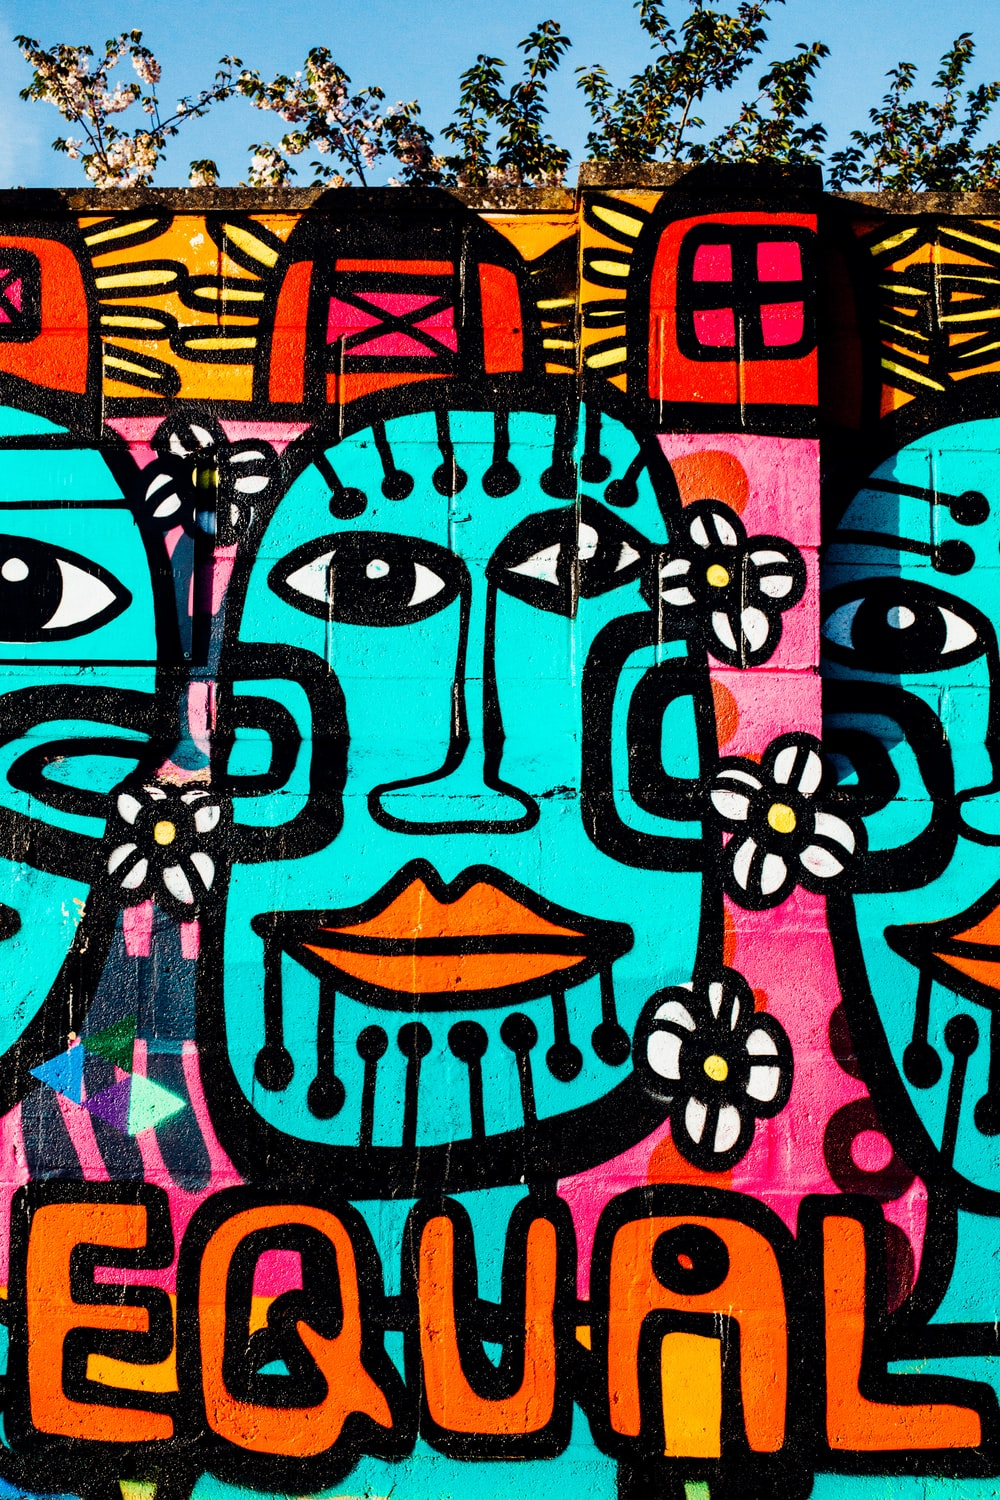 pink, teal, and orange graffiti wall art